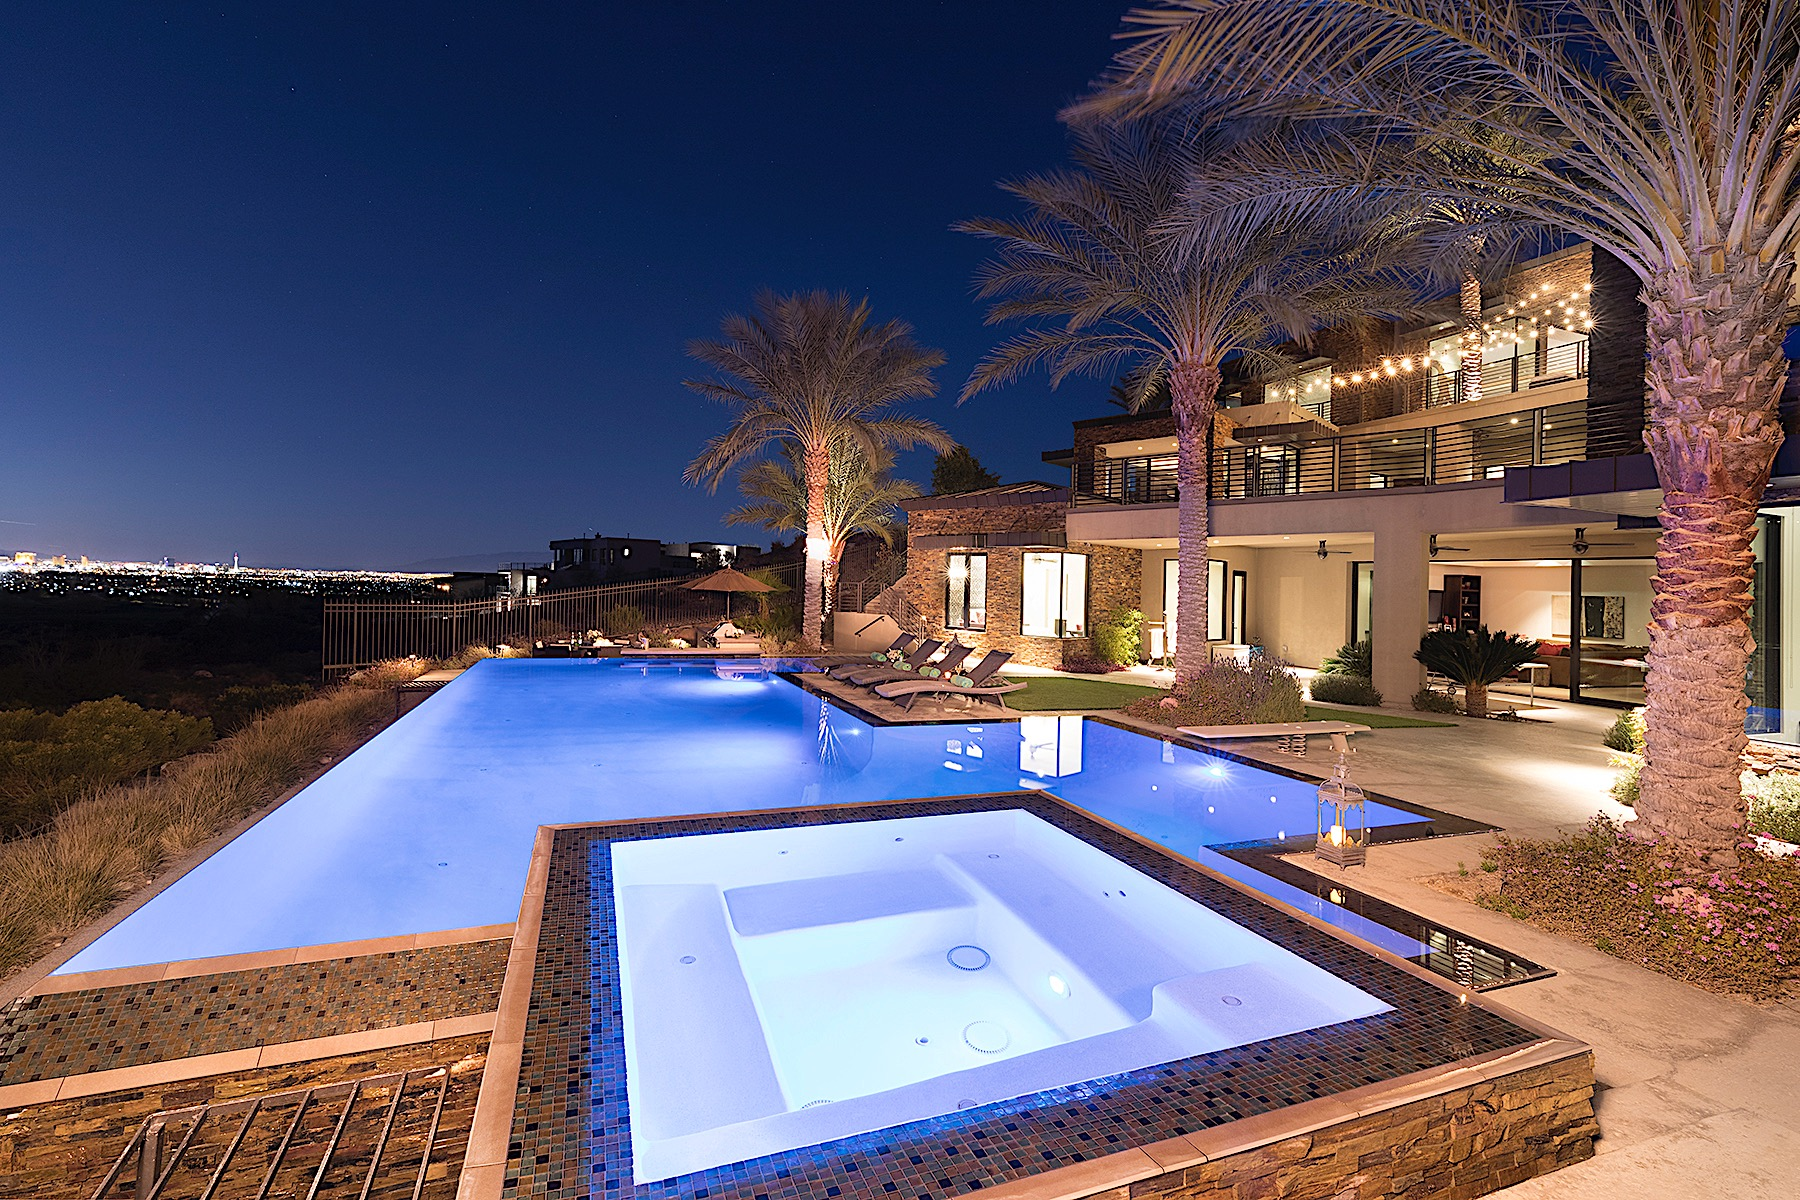 Modern Panorama Estate in Double Guard Gated Macdonald Highlands 591 Lairmont Place Henderson, Nevada 89012 United States